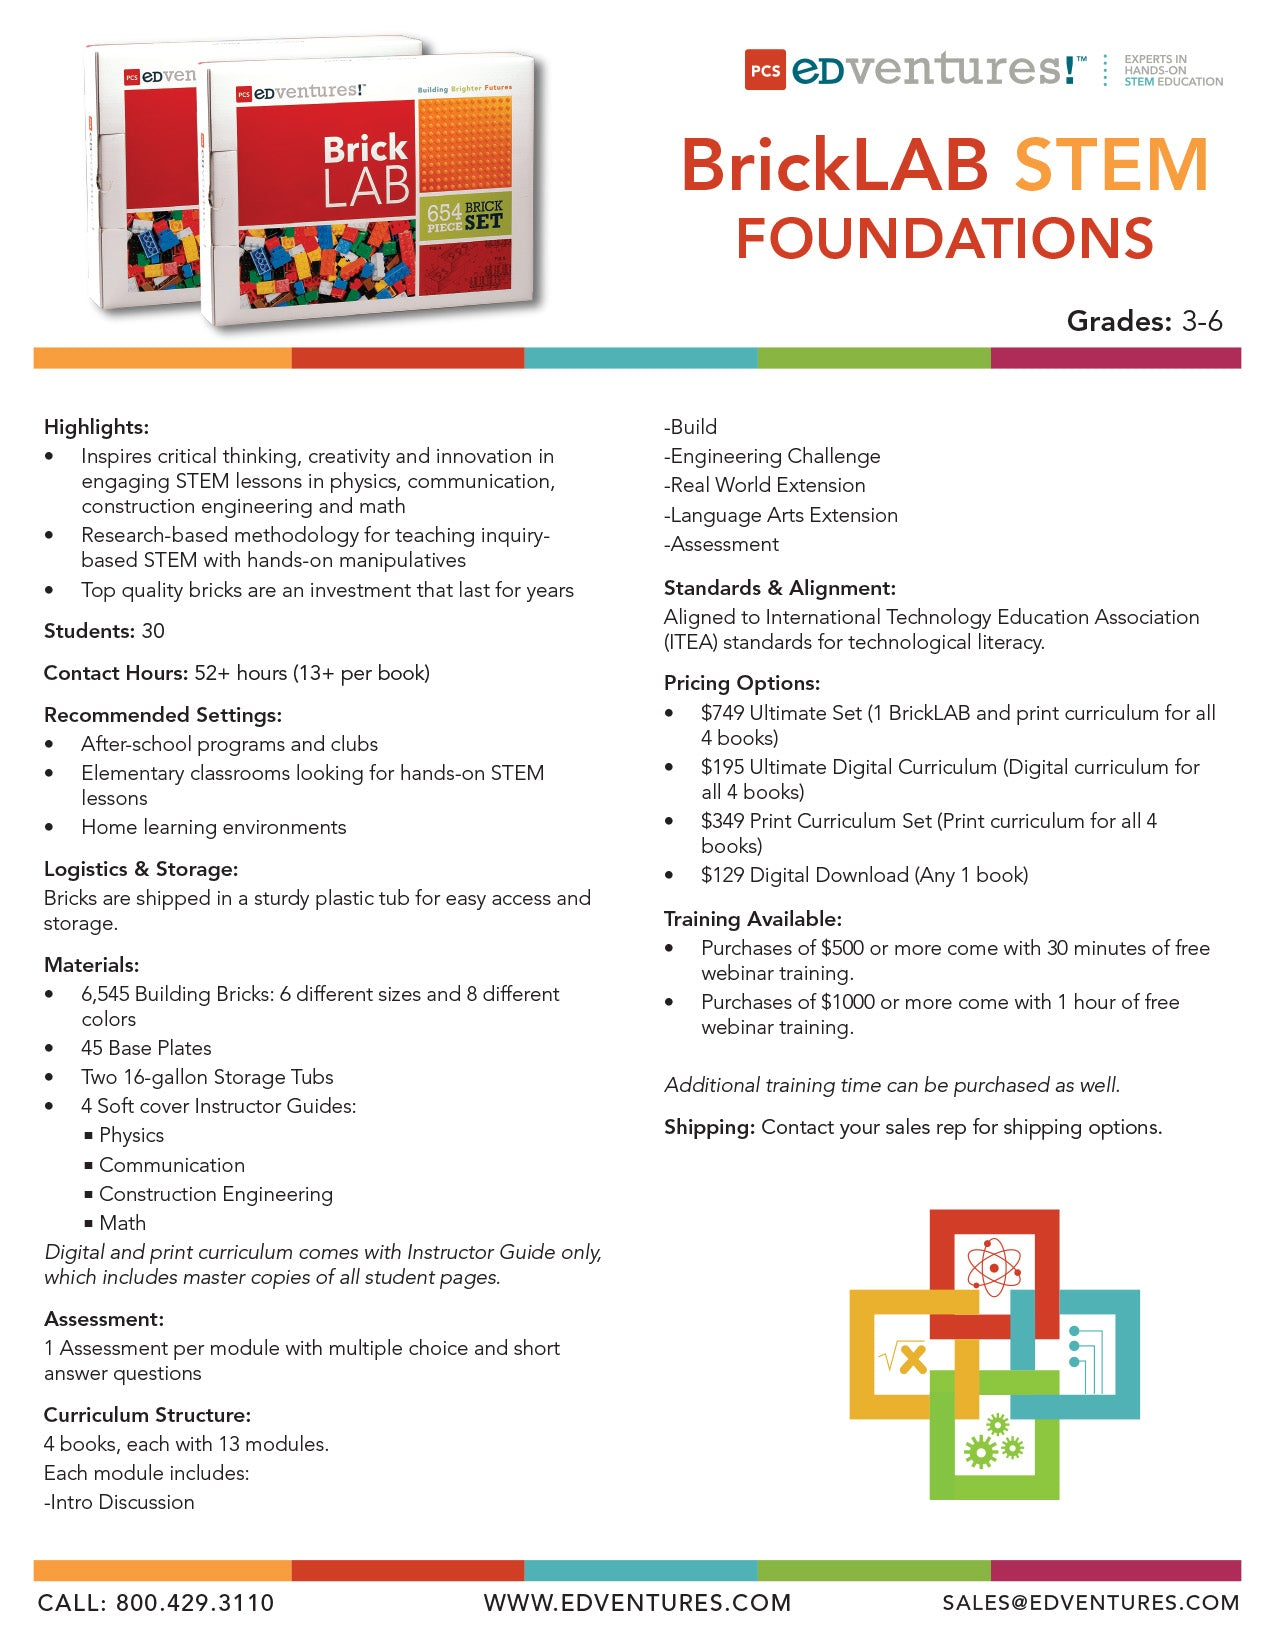 BrickLAB STEM Foundations Spec Sheet